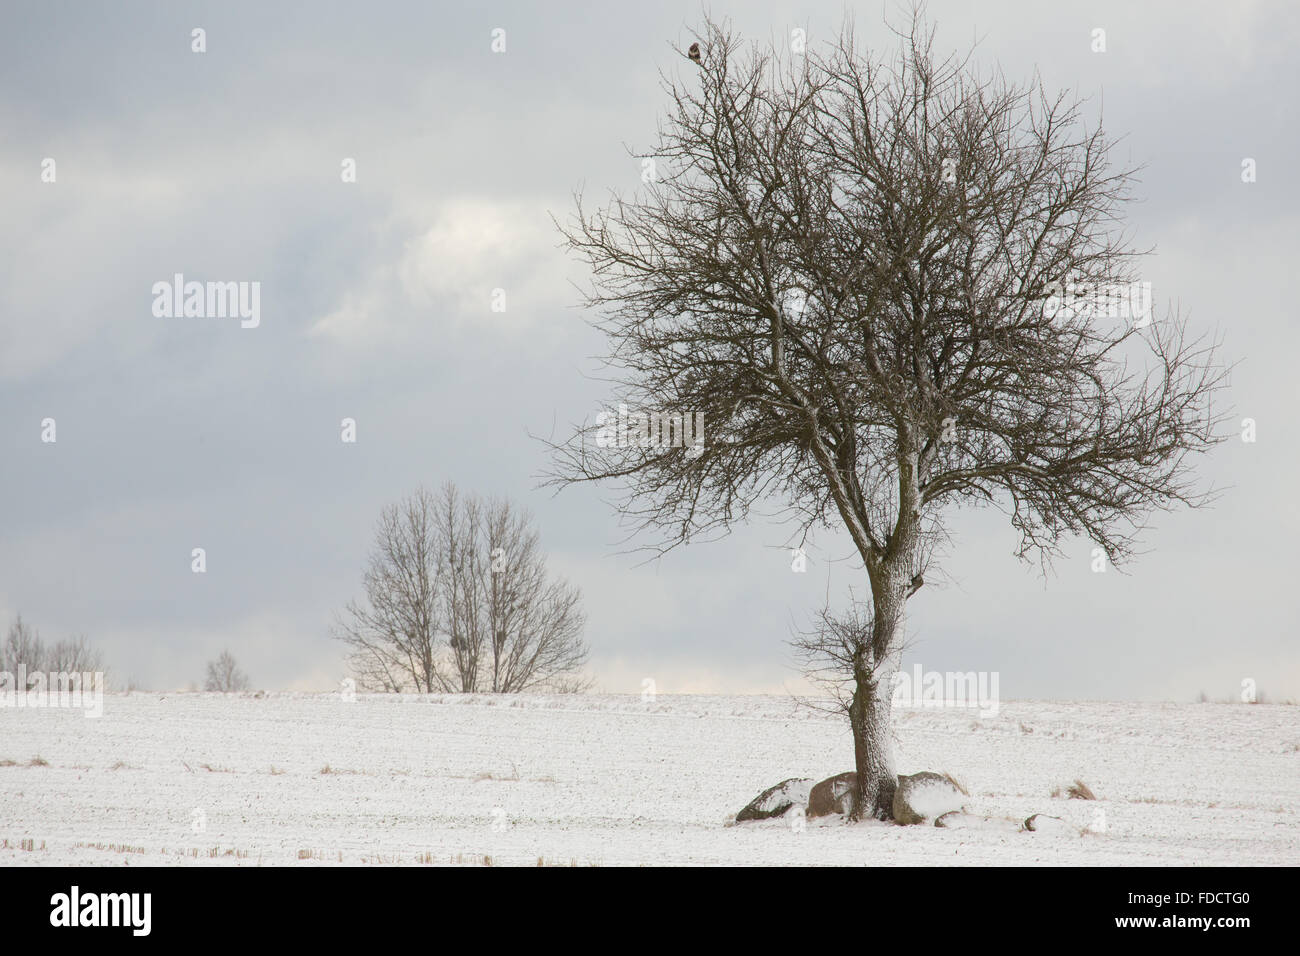 Lonely deciduous tree in wintertime snowy field against cloudy sky,Podlasie Region,Poland,Europe - Stock Image